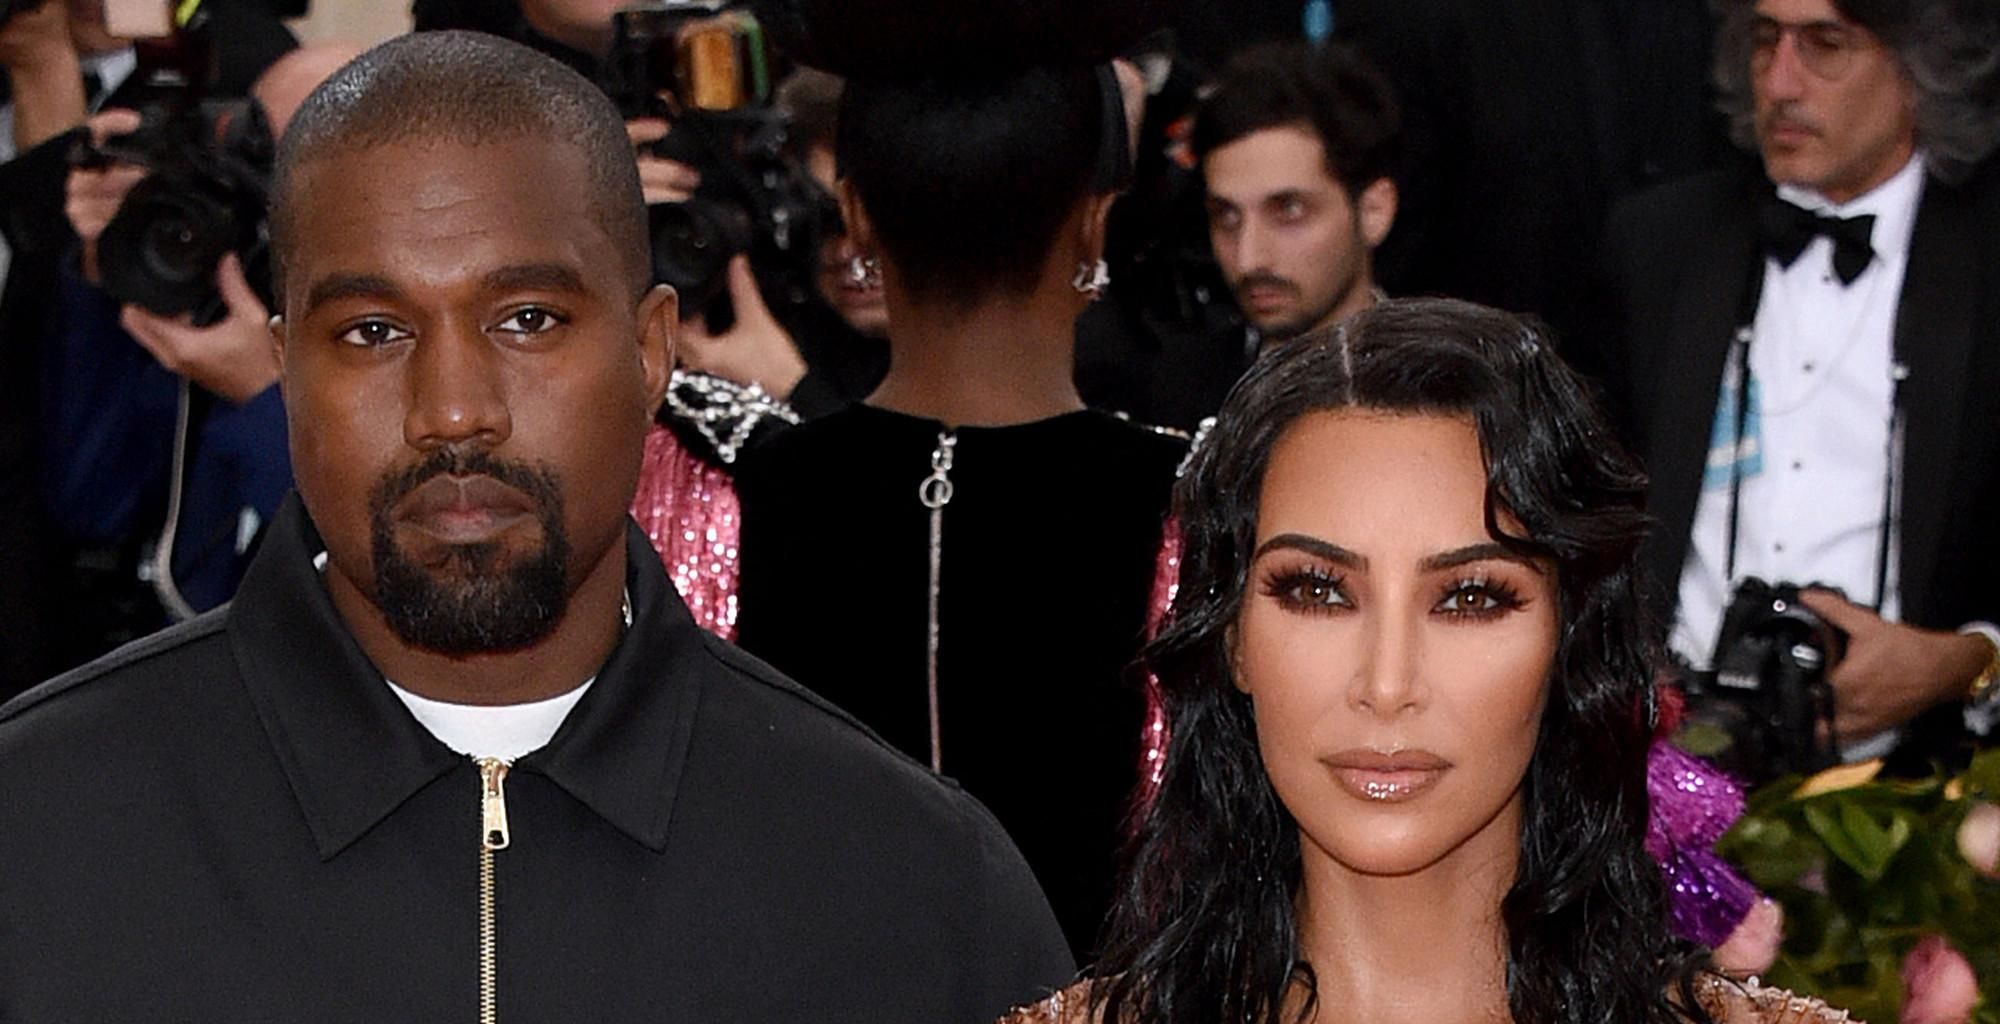 Kim Kardashian Reportedly Returns To LA Alone Following Her Meeting With Kanye West